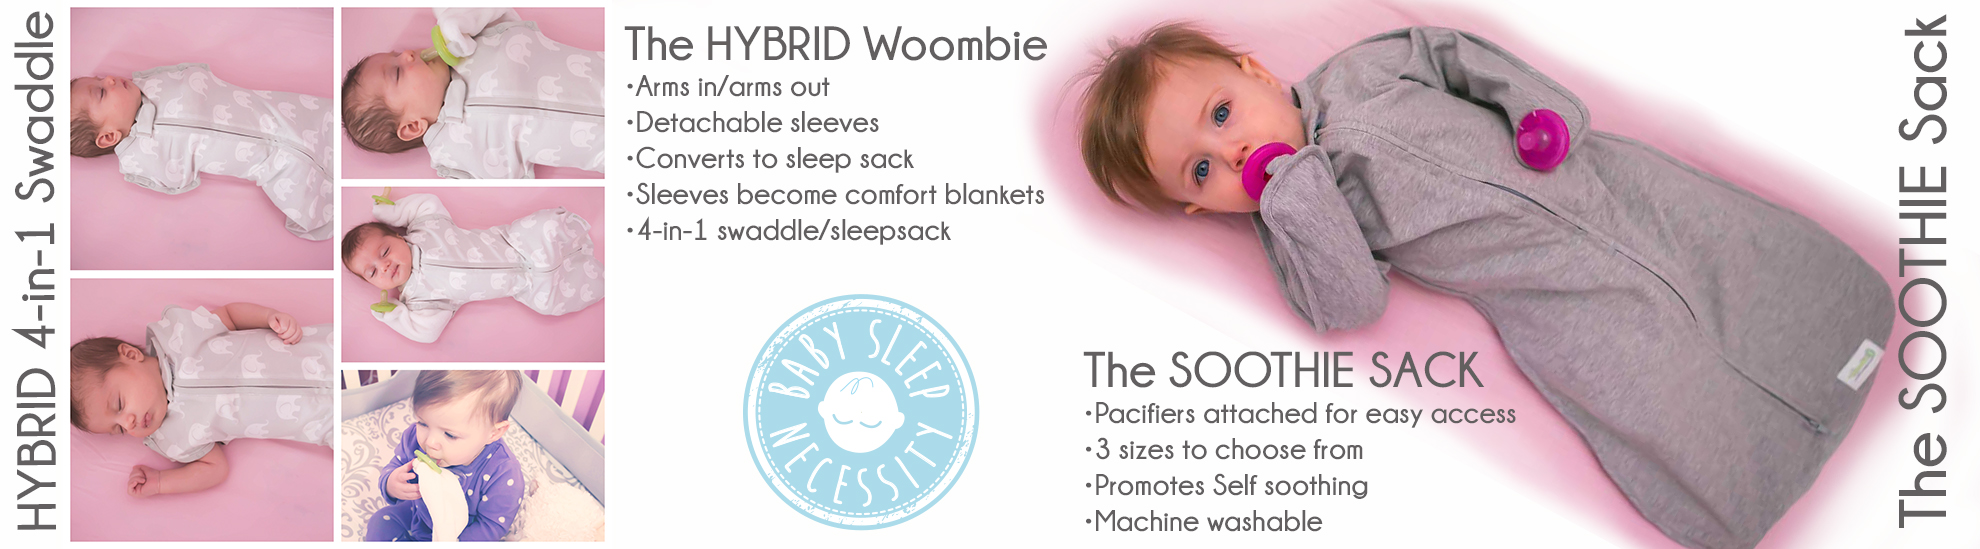 The Ultimate Sleep Aid For Your Baby Why We Love Woombie